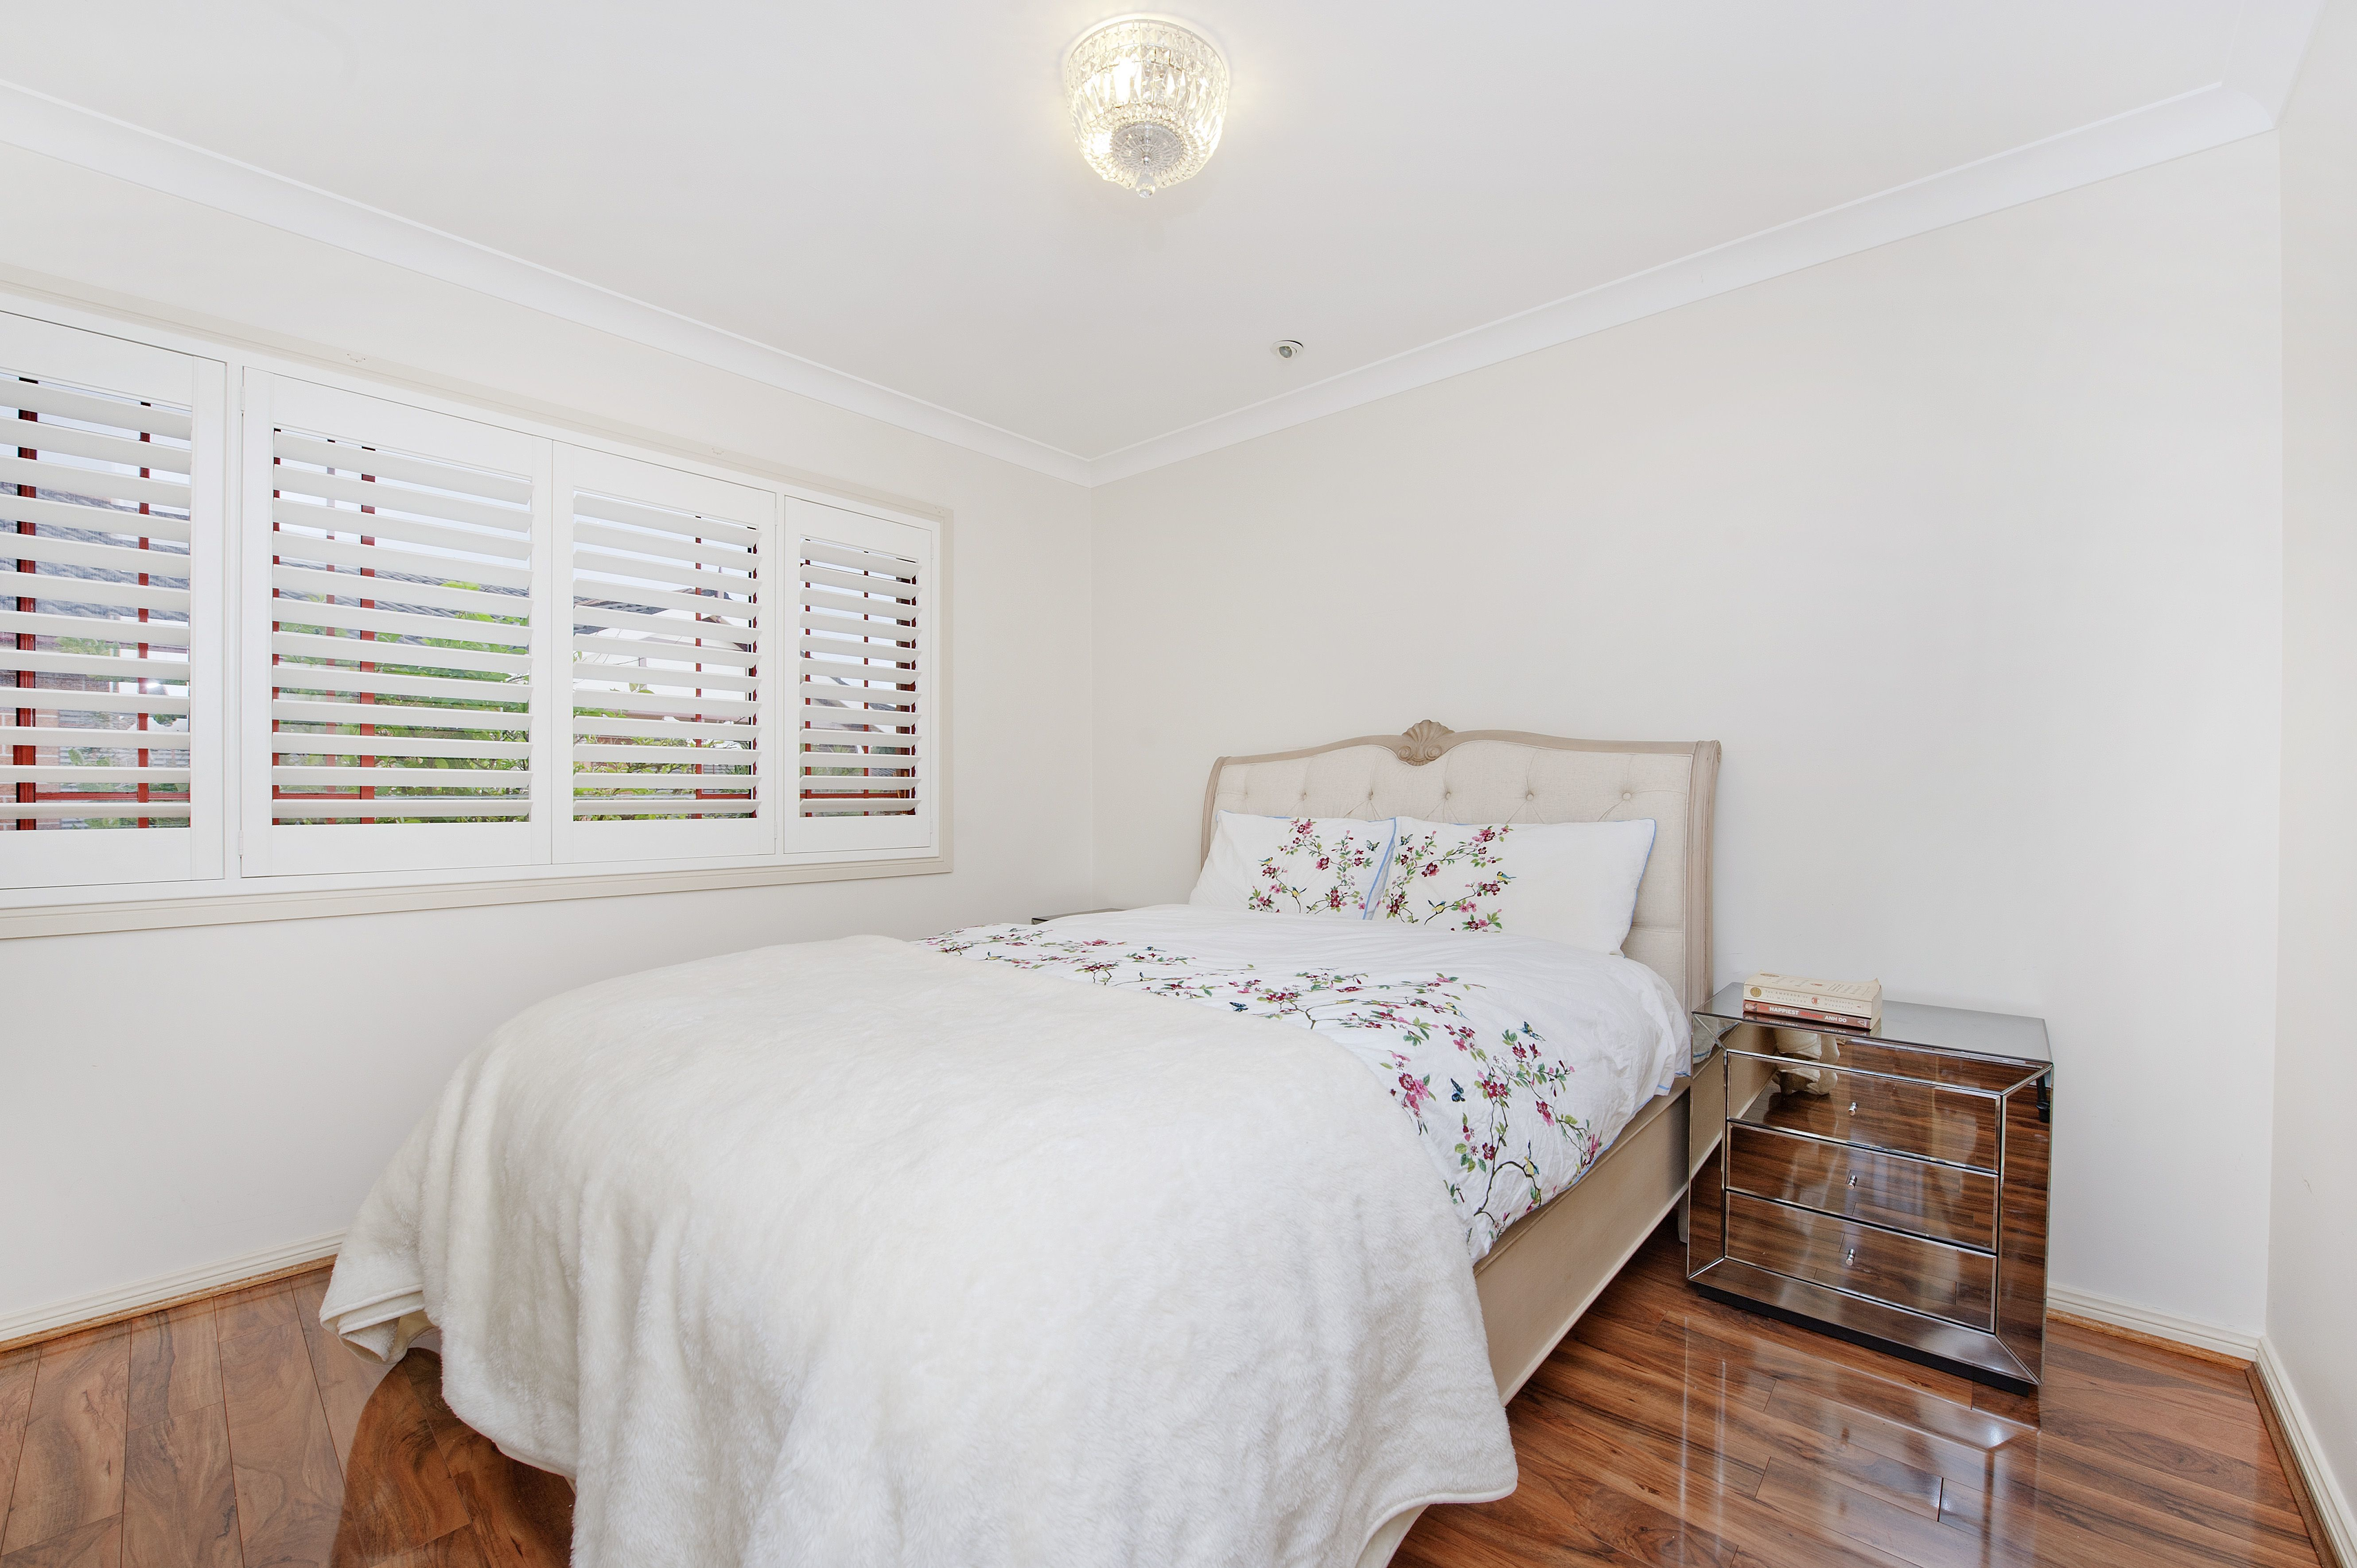 1/25A Tait Street, Russell Lea